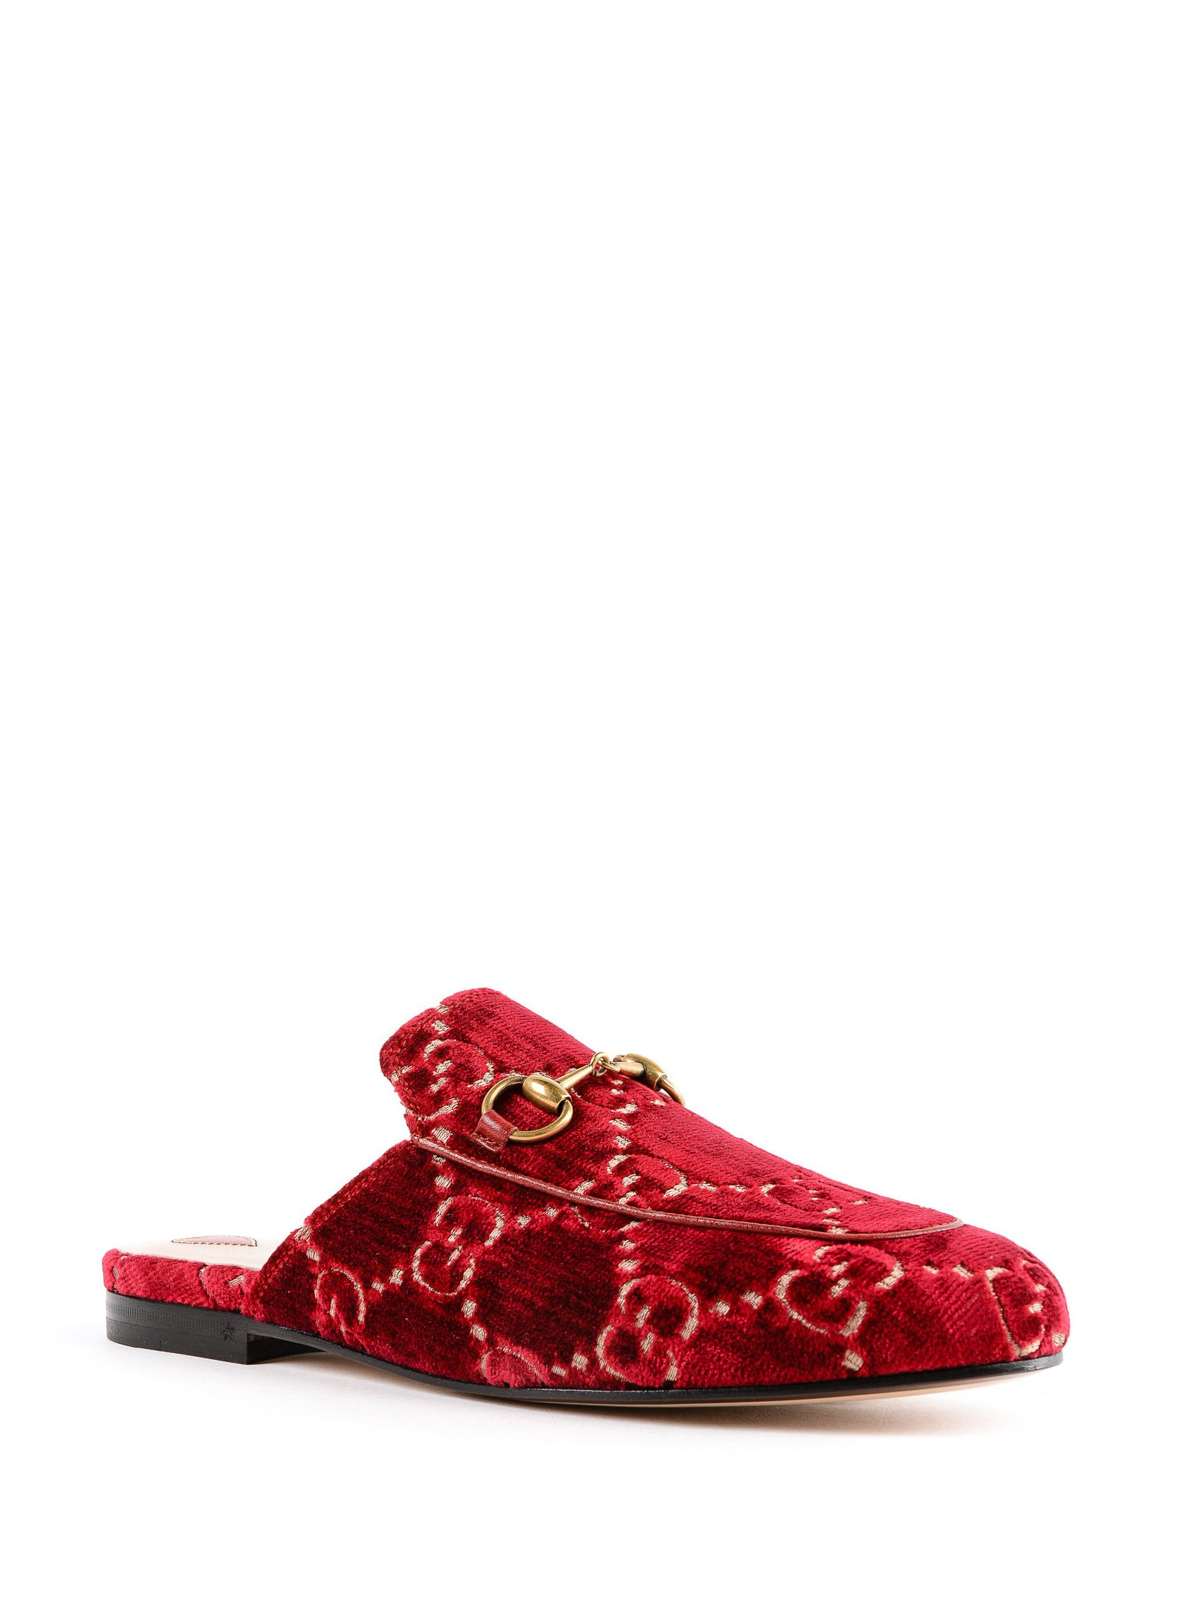 302a3a203dc GUCCI  Loafers   Slippers online - Princetown GG velvet slippers